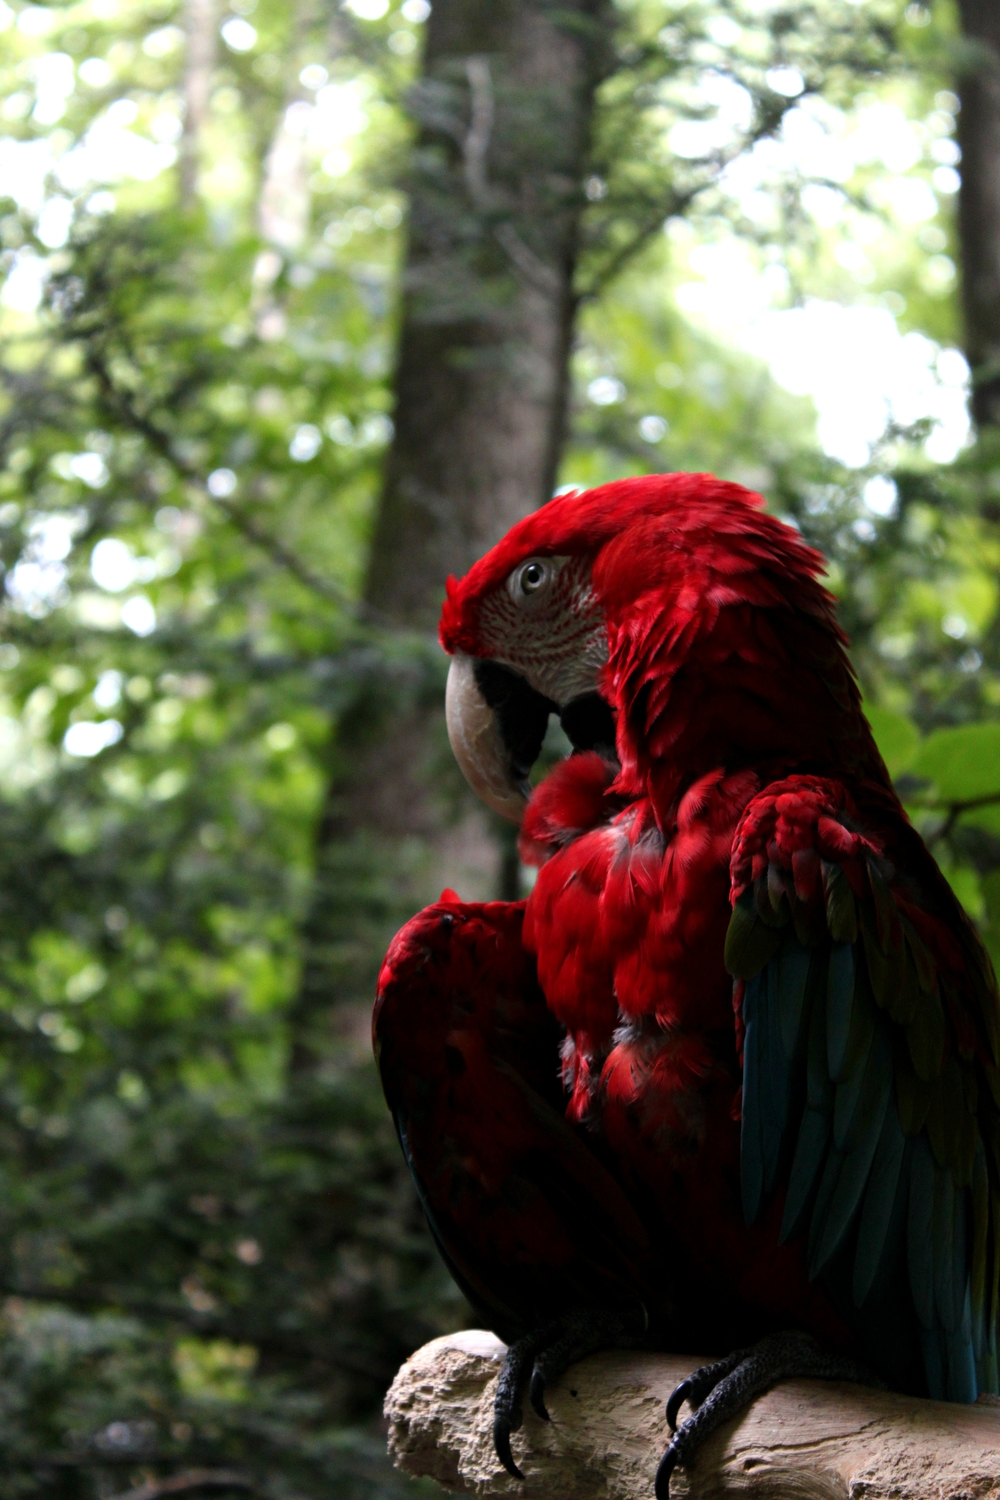 A Scarlet Macaw enjoying the weather after the rain.